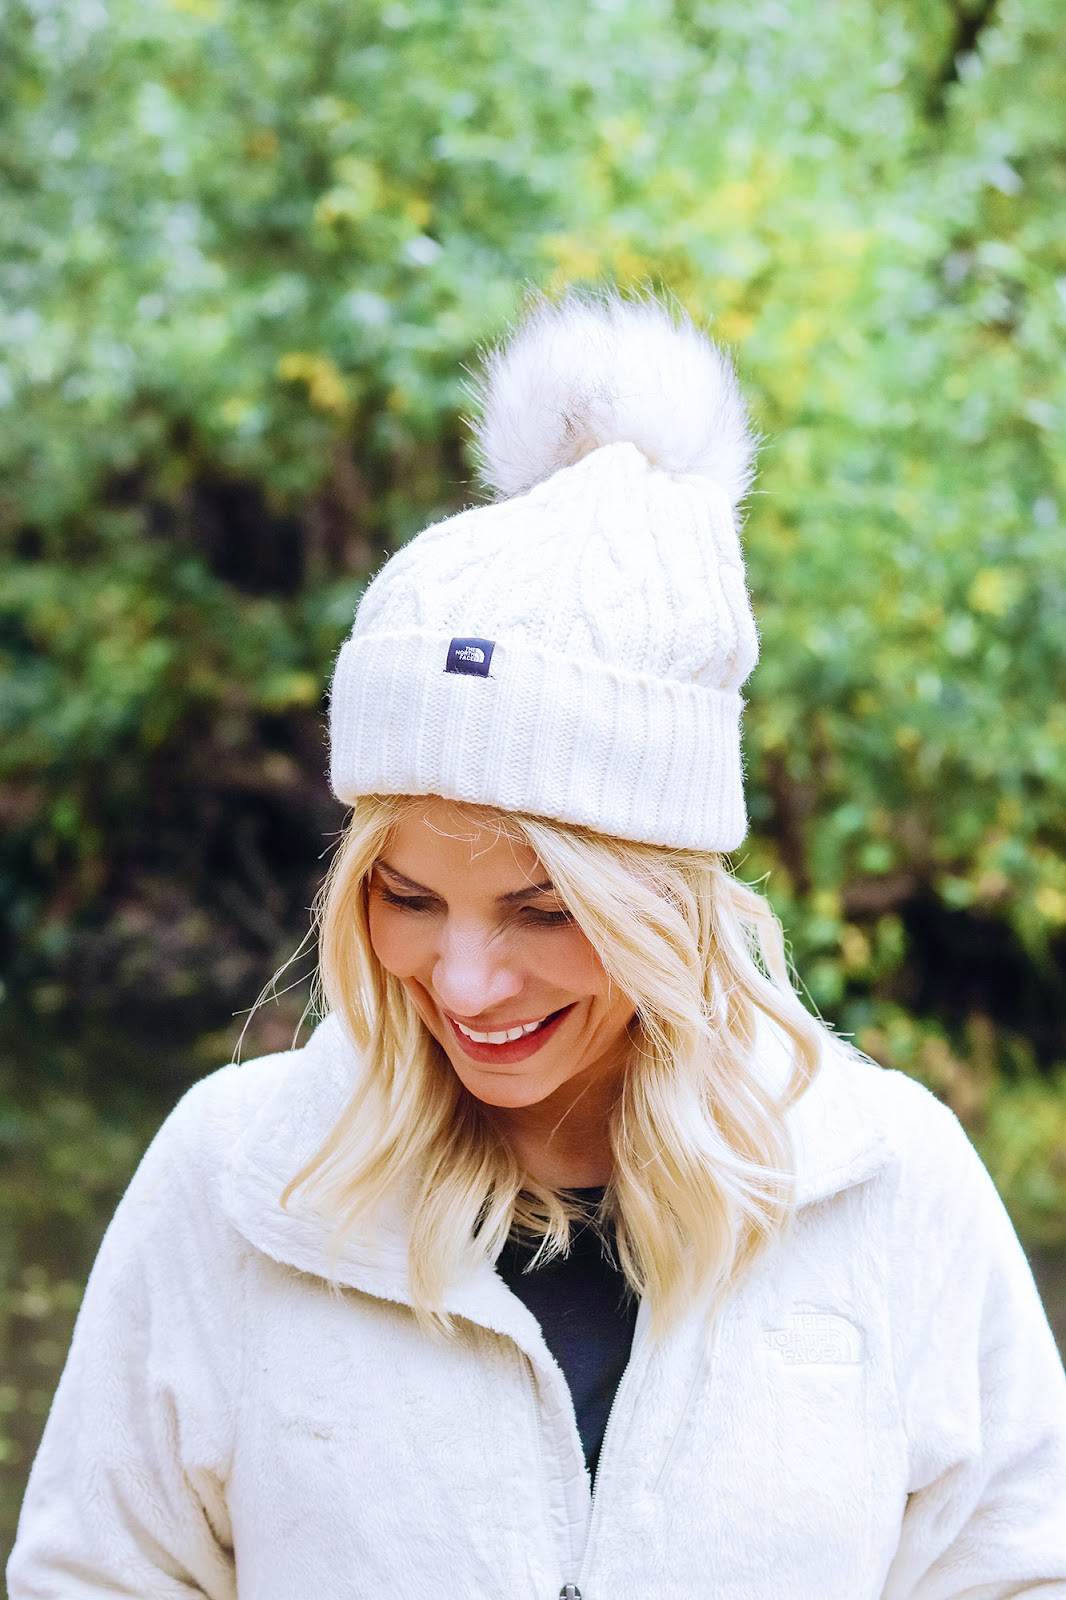 December Bucket List & Cozy Winter Wear - Our favorite things to do around the holiday season and our favorite The North Face products!